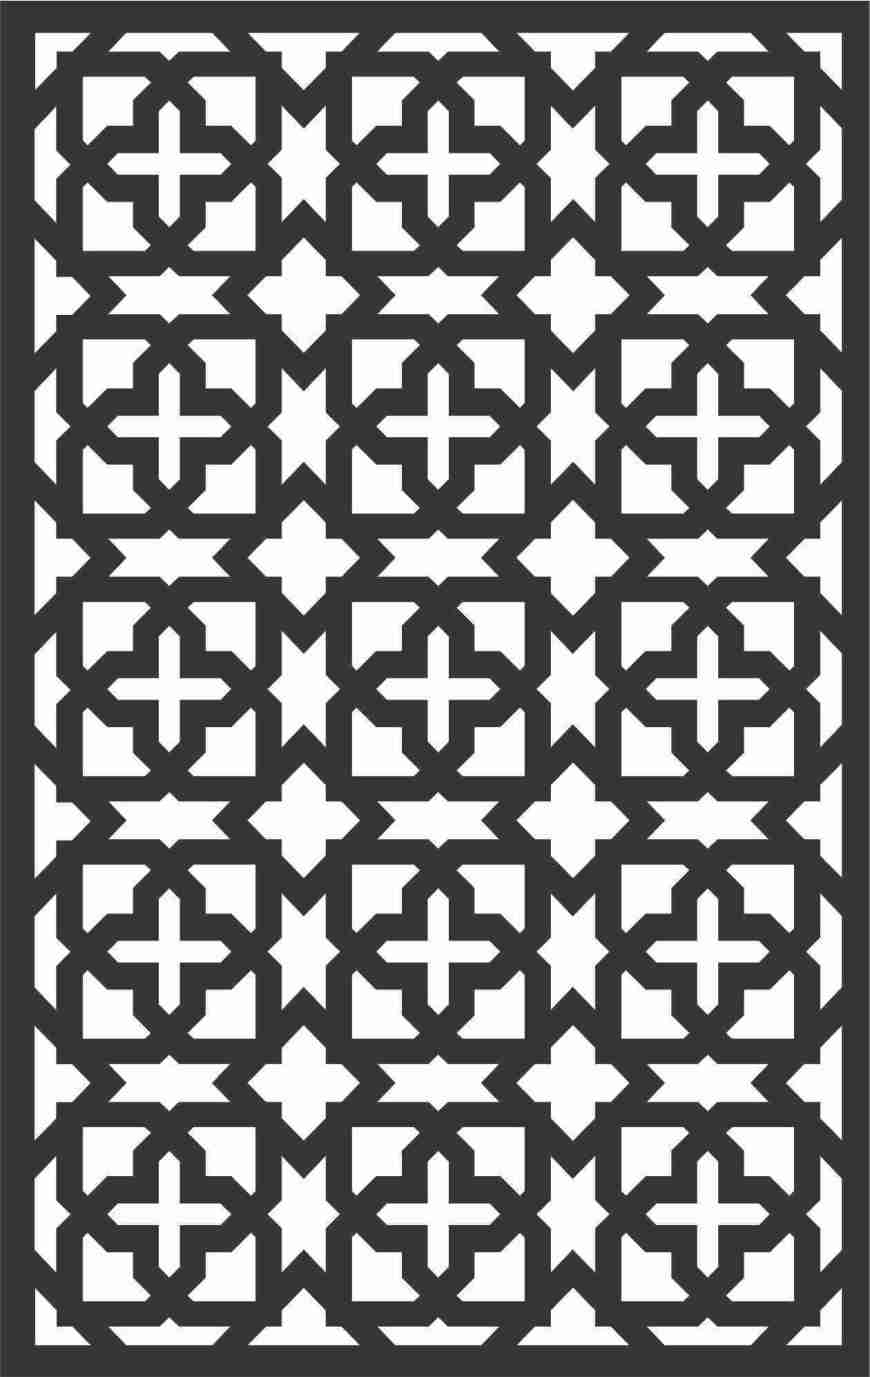 Decorative Screen Patterns For Laser Cutting 97 Free DXF File